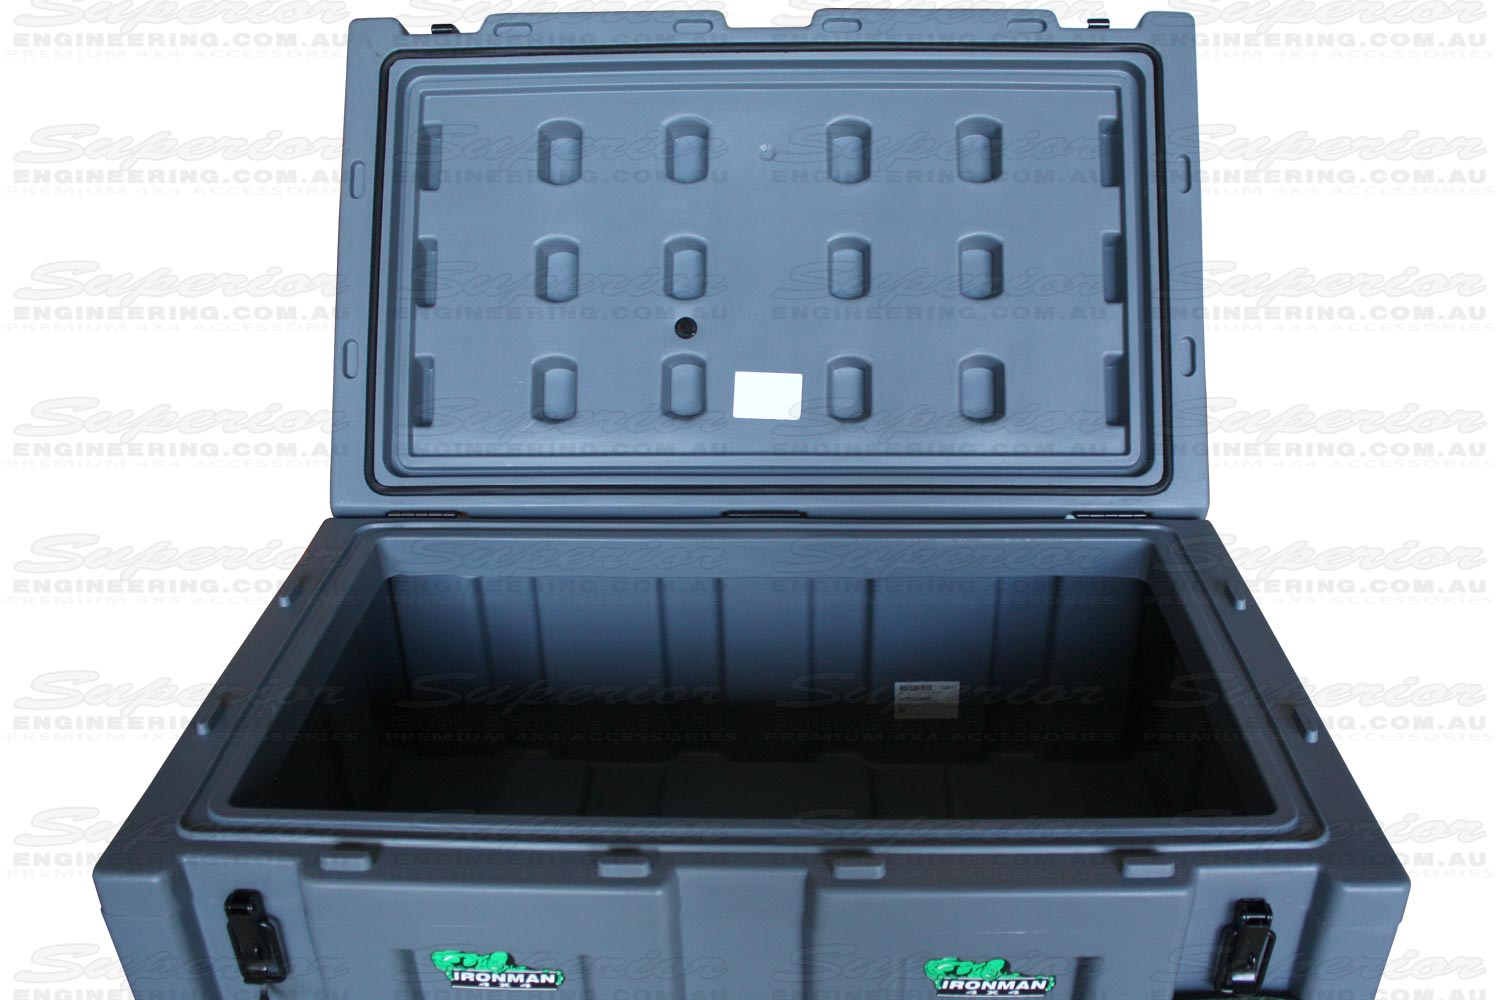 Inside the 135 Litre Ironman 4x4 Space Case